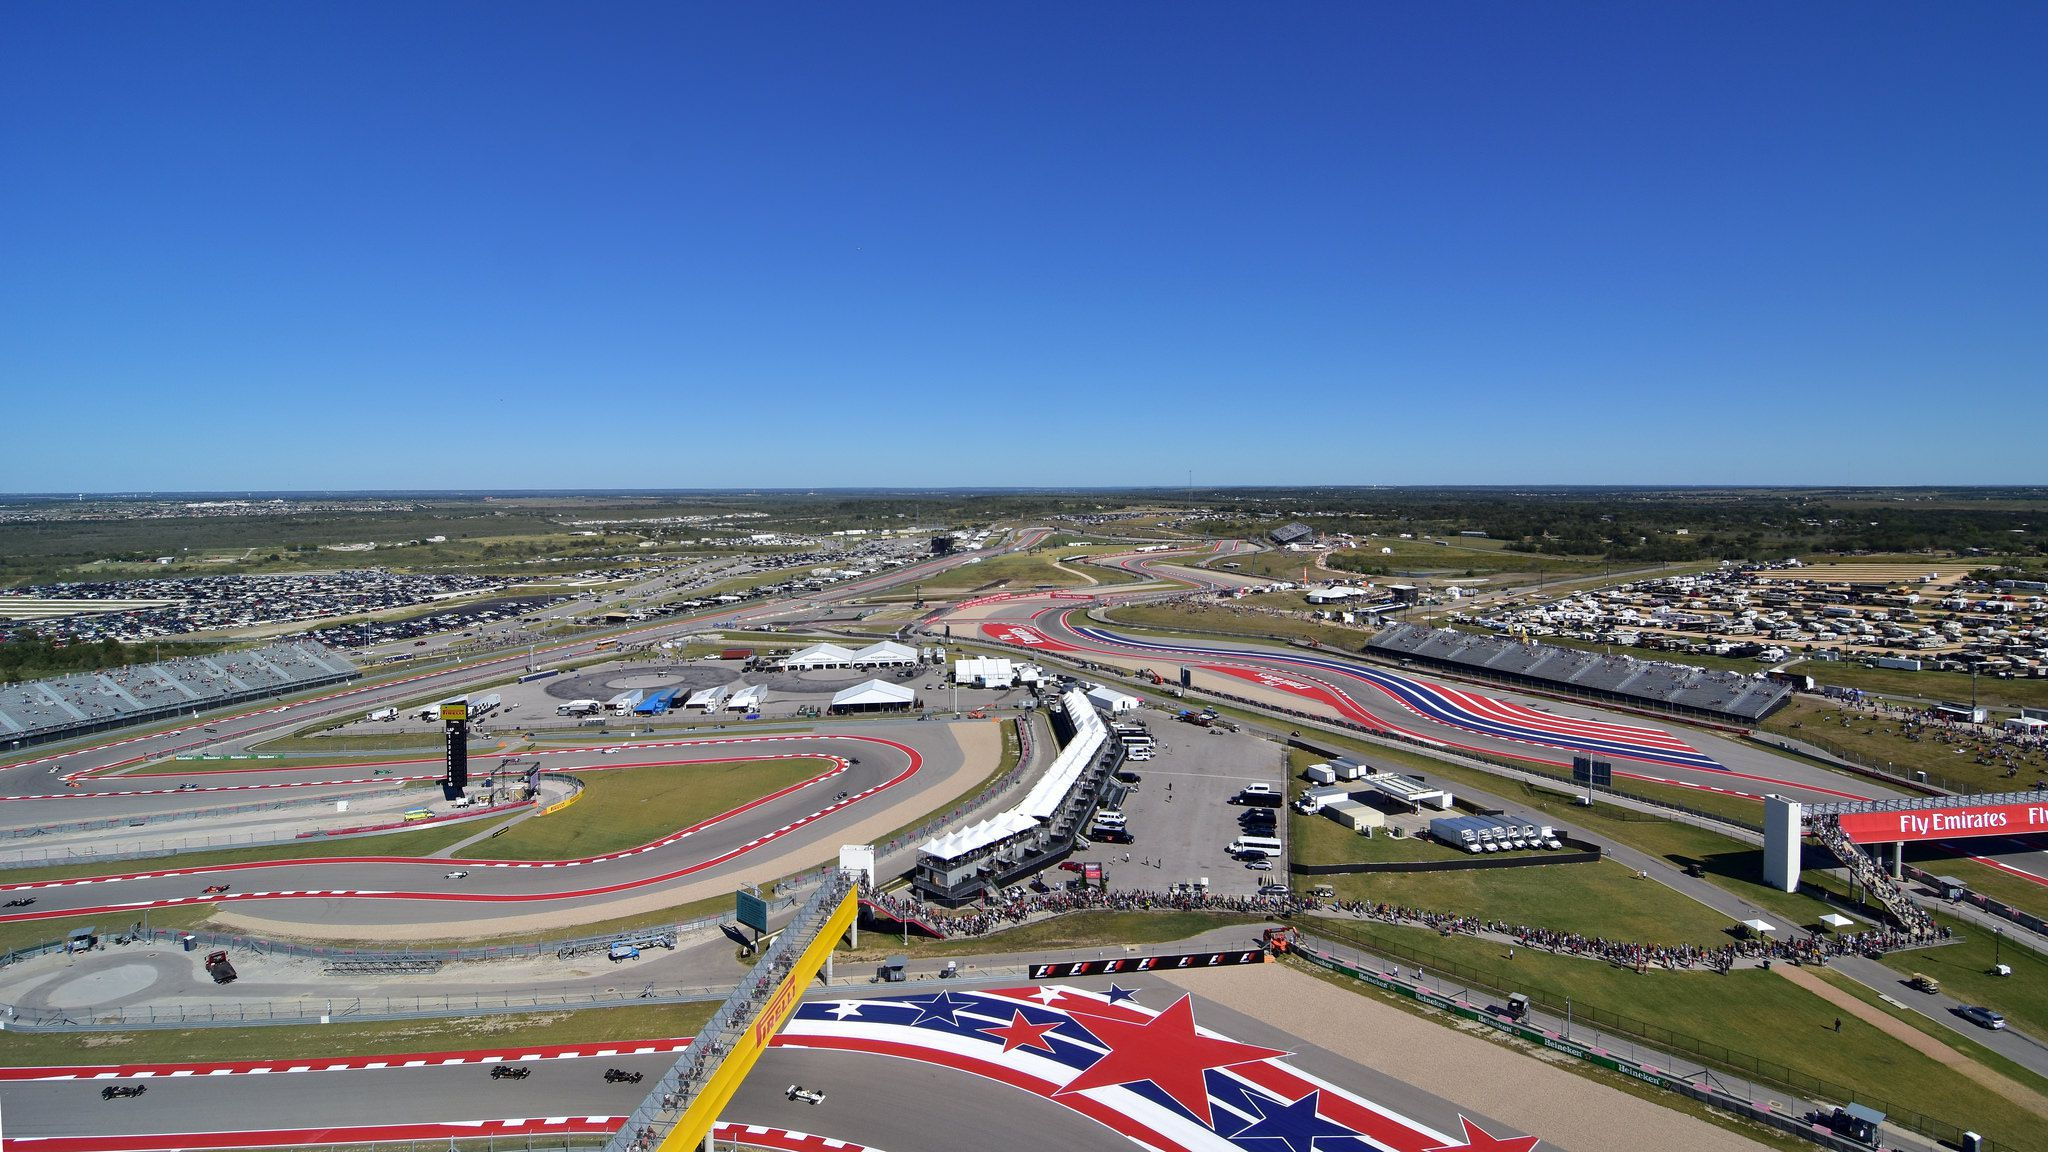 Circuit Of The Americas F1 Race Track In Austin